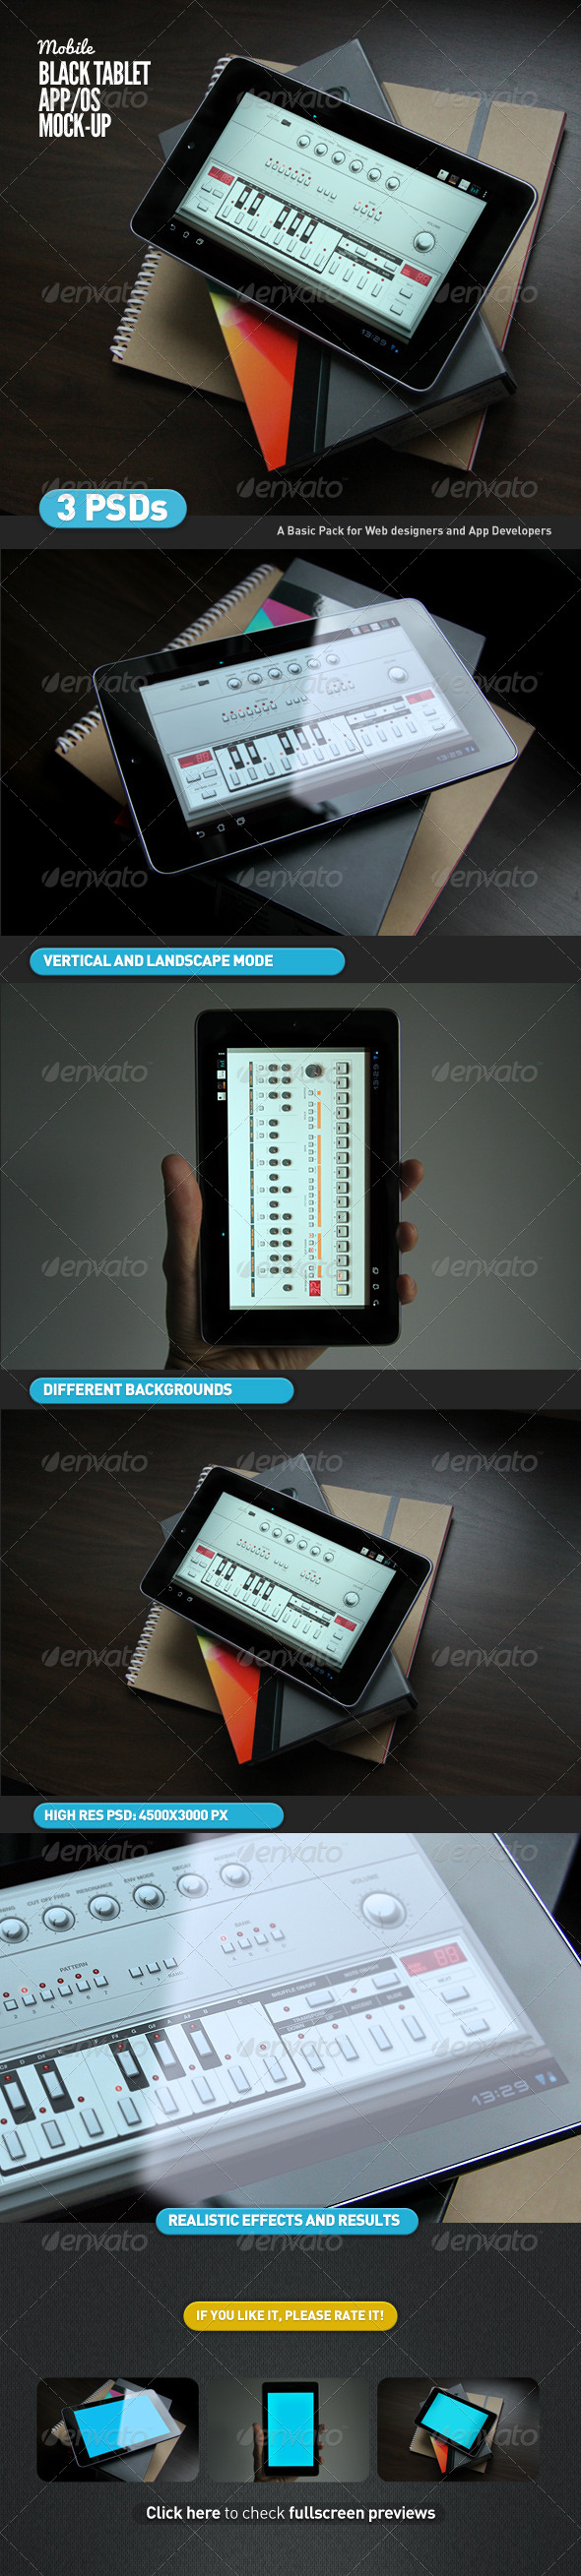 GraphicRiver Black Tablet Android GUI App Mock-Up 4630361